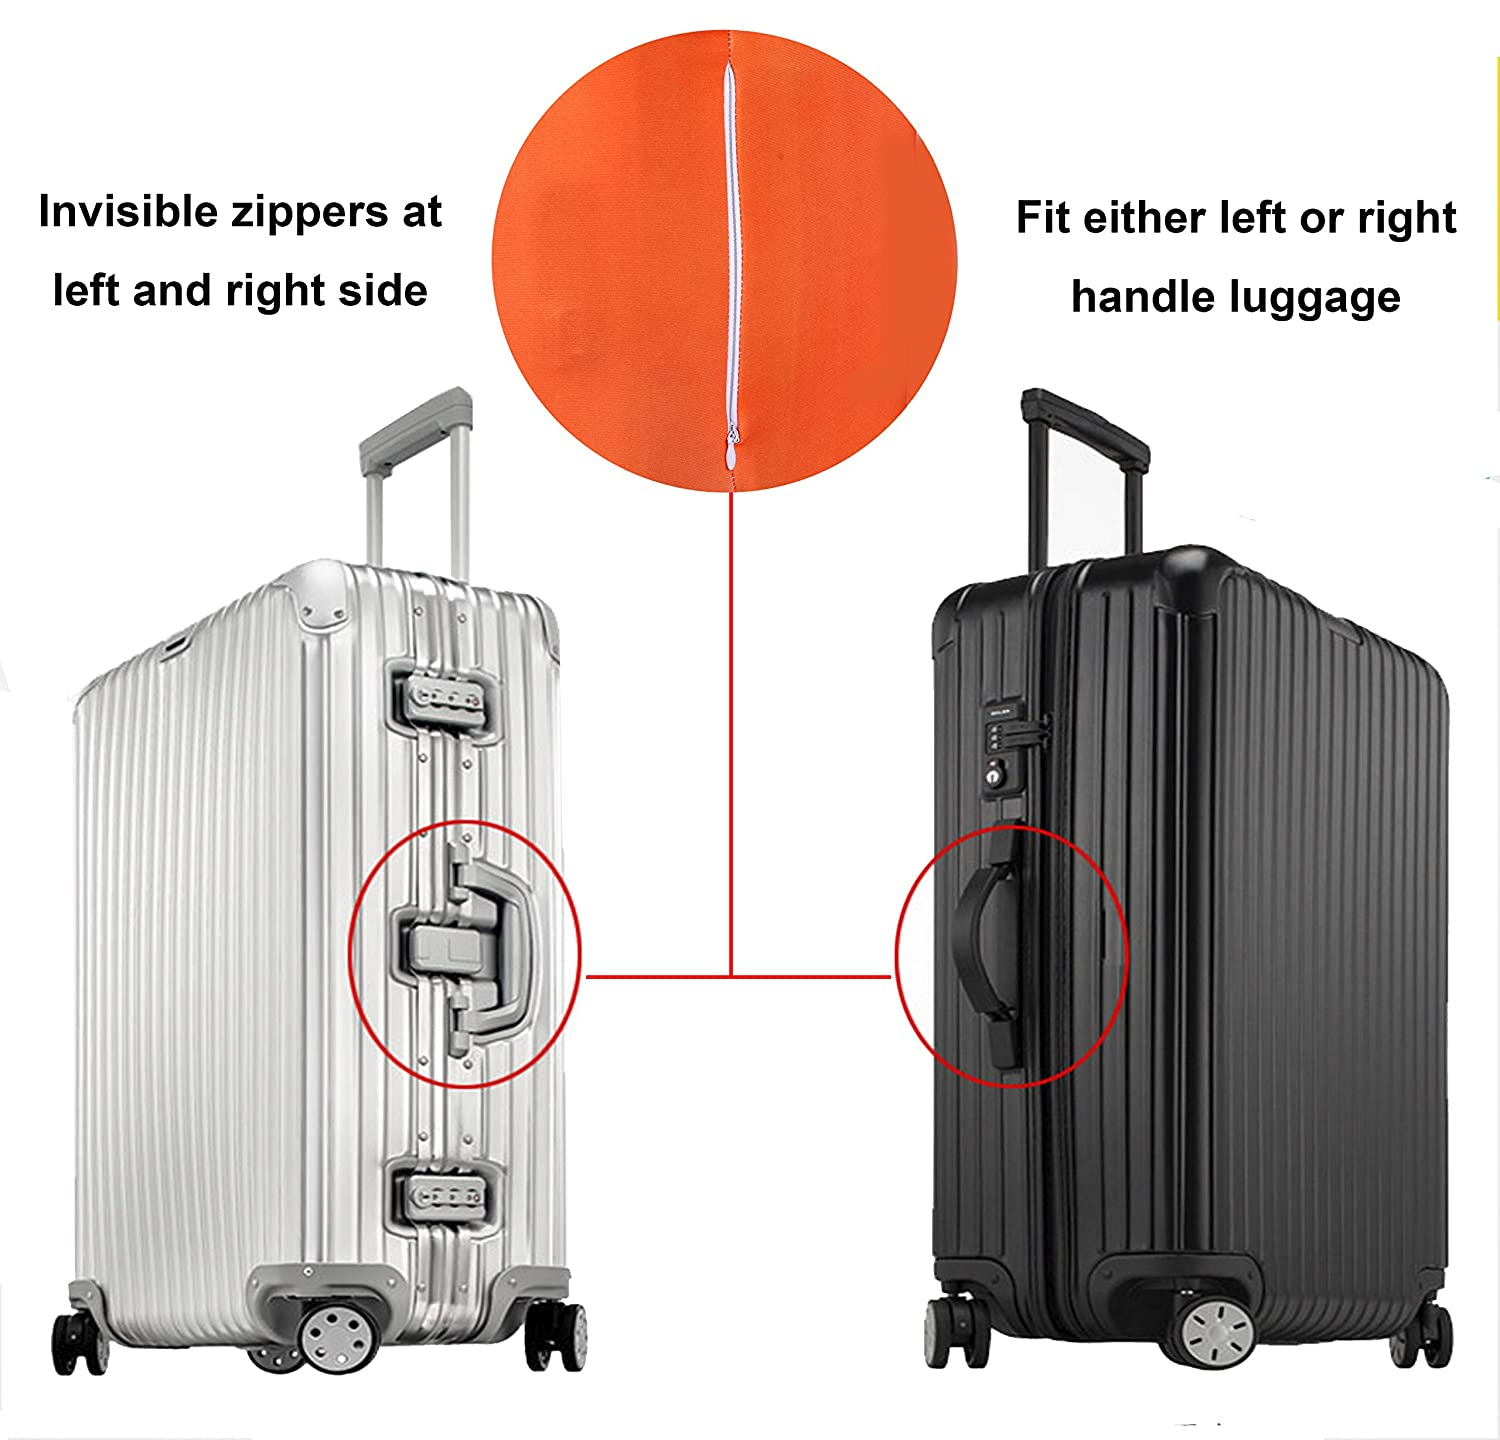 Amazon.com: Reliancer Travel Luggage Cover Spandex Suitcase Protector Fits 18-32 Inch Luggage Washable Elastic Suitcase Bag Cover Stretchy Dustproof Travel ...